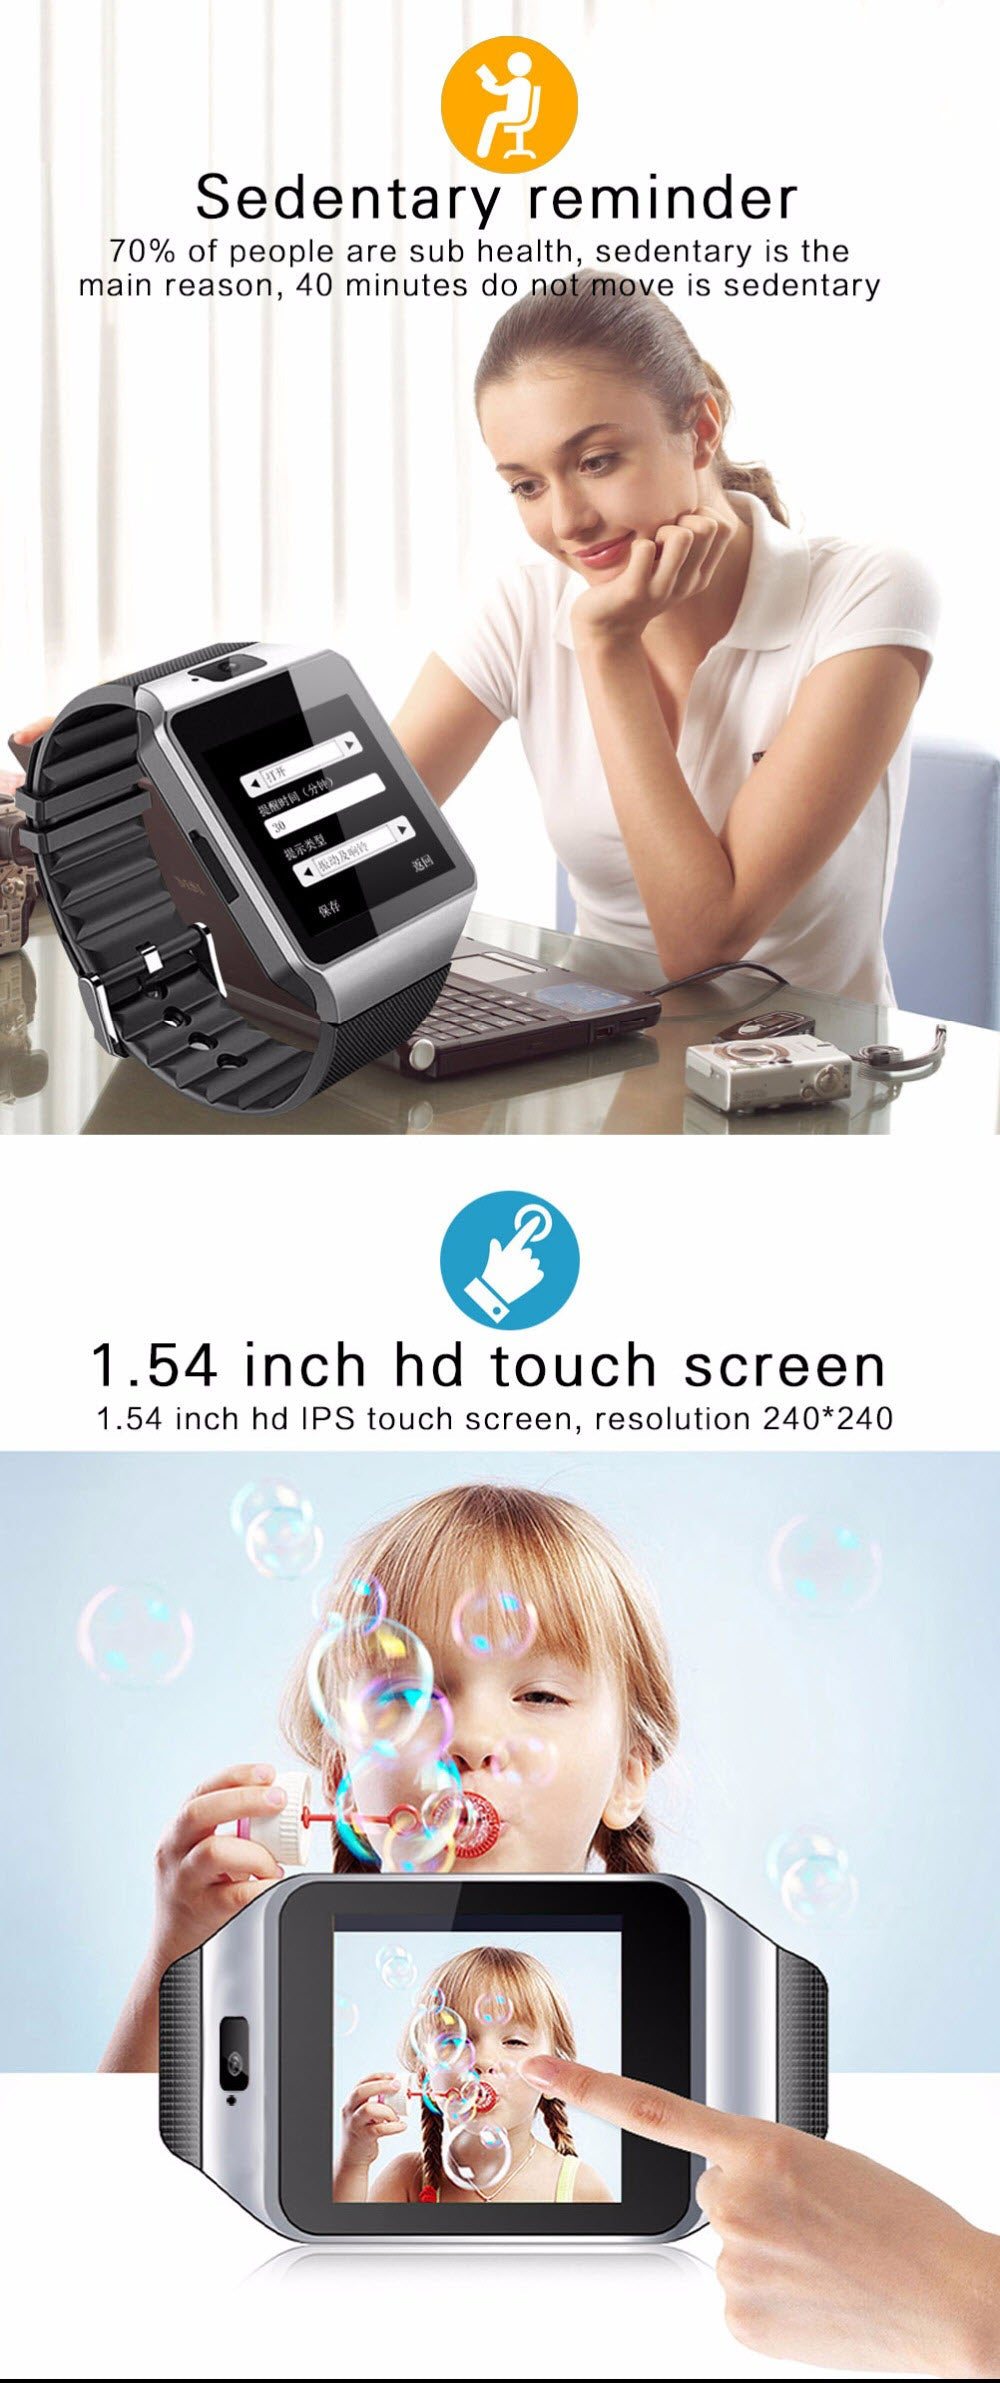 CN6 Square™ Premium Android iOS Smartwatch Phone